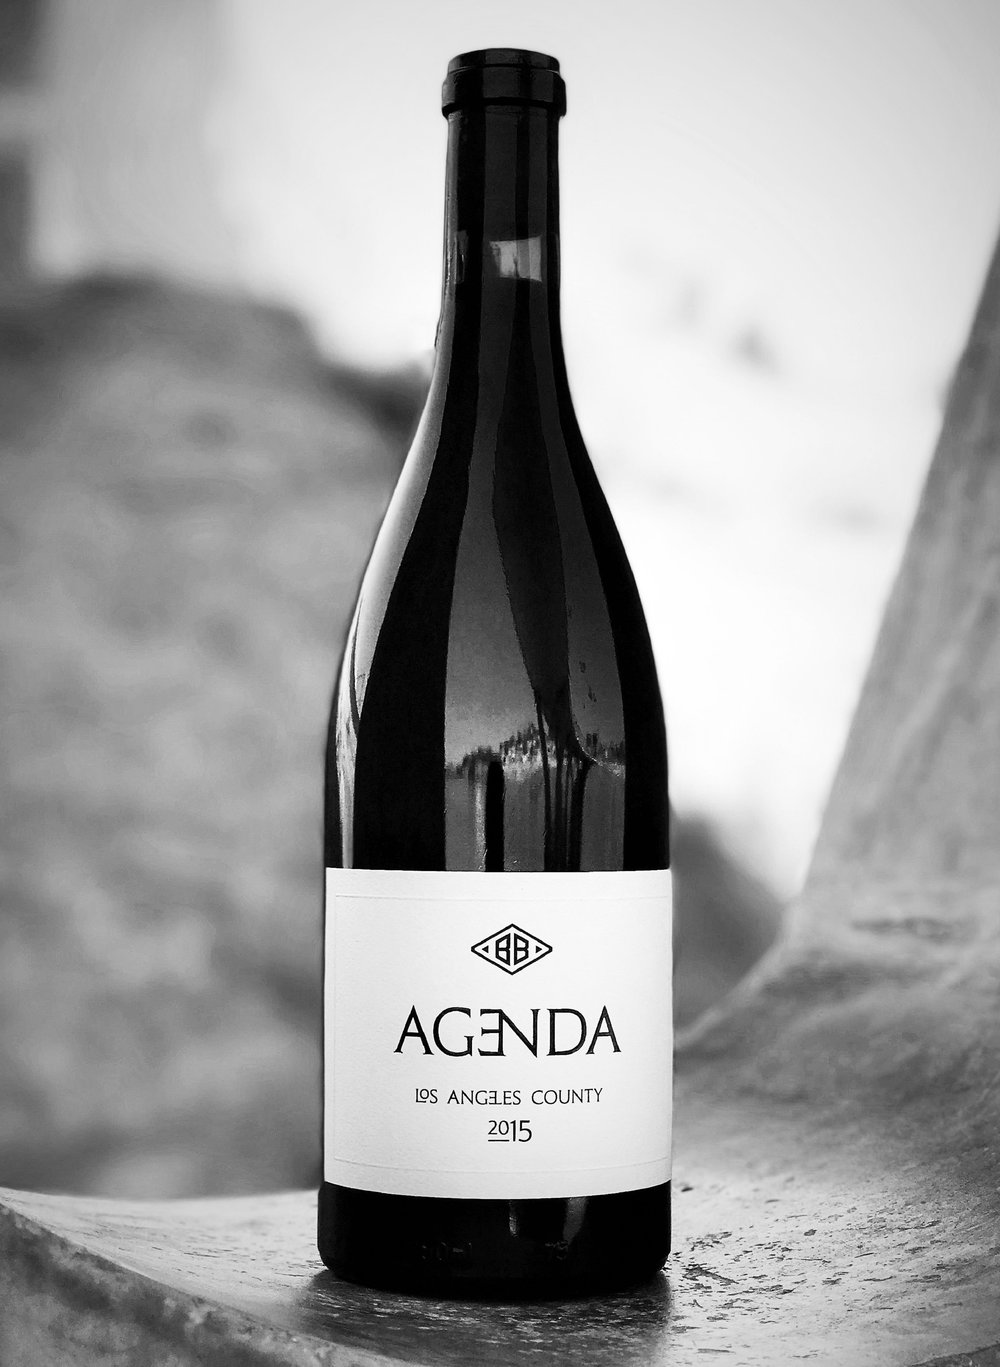 2015 Agenda Byron Blatty Wines.JPG